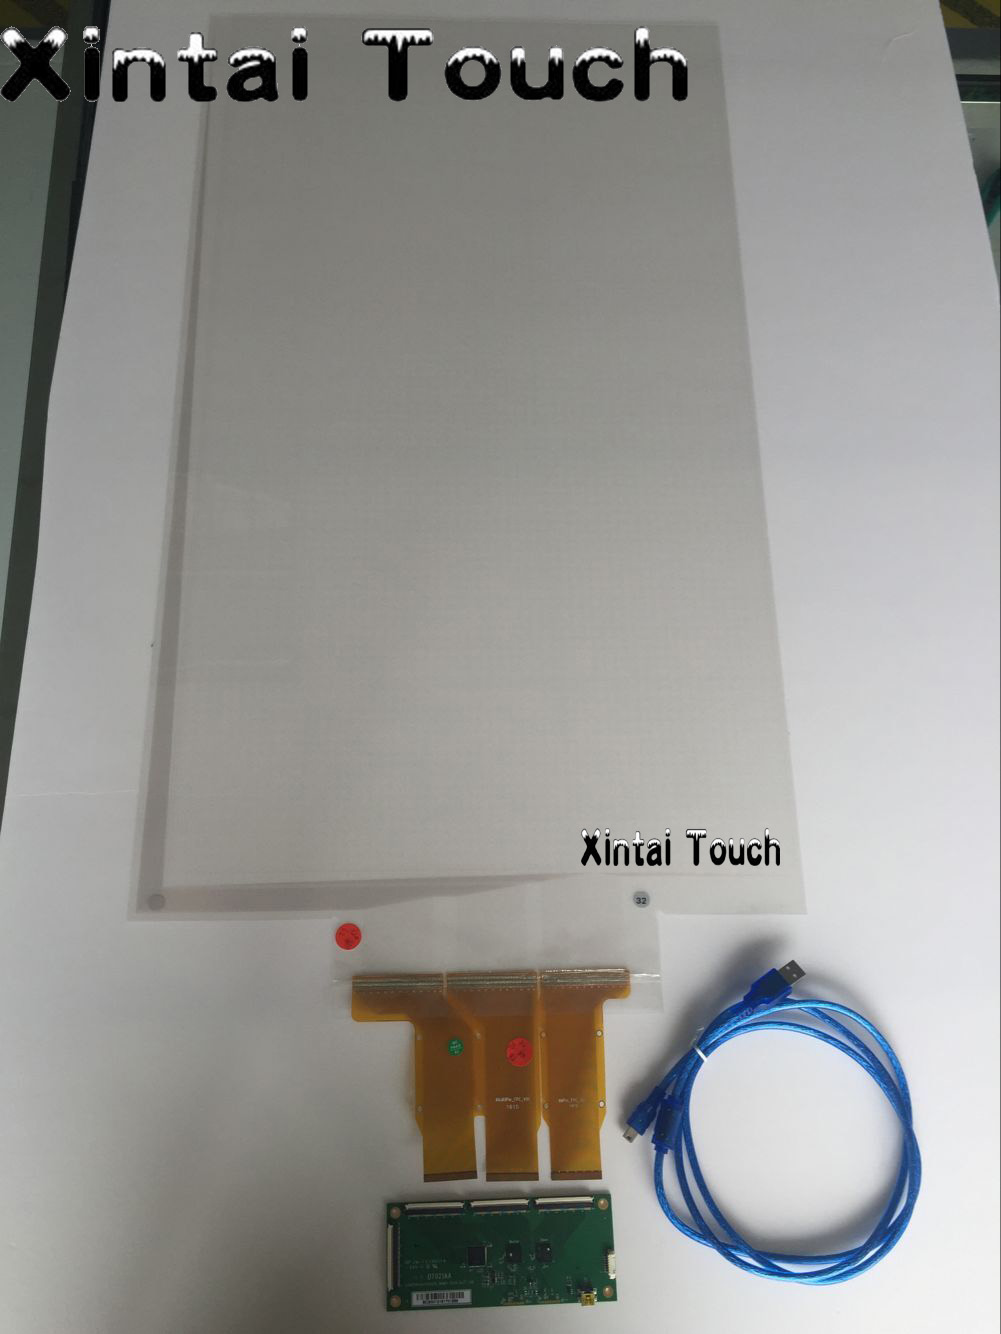 Best price 42 inch touch foil film, High Quality multi touch film through LCD or projector (window shop display)